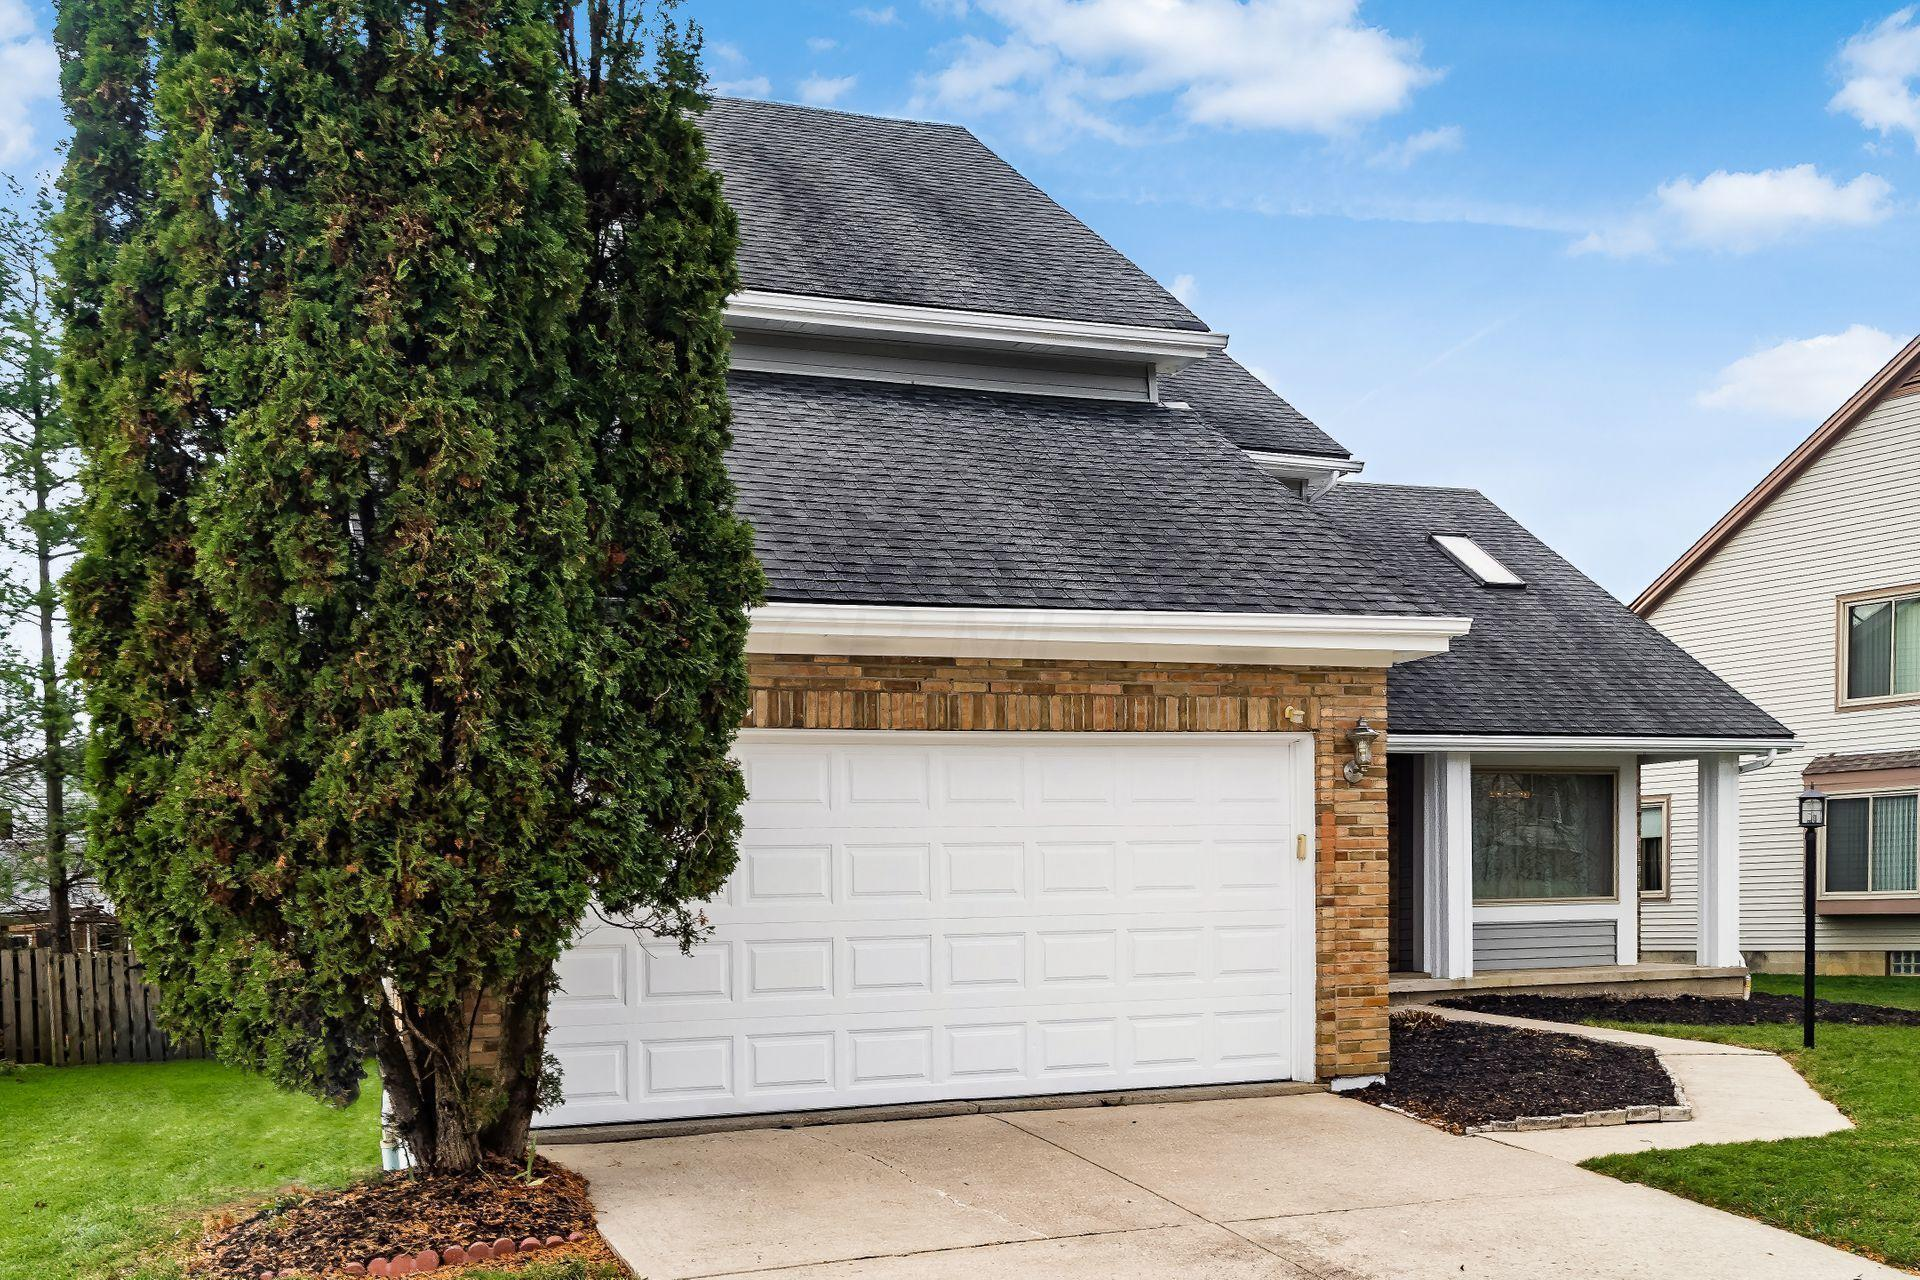 2161 Stowmont Court, Dublin, Ohio 43016, 4 Bedrooms Bedrooms, ,3 BathroomsBathrooms,Residential,For Sale,Stowmont,220041010